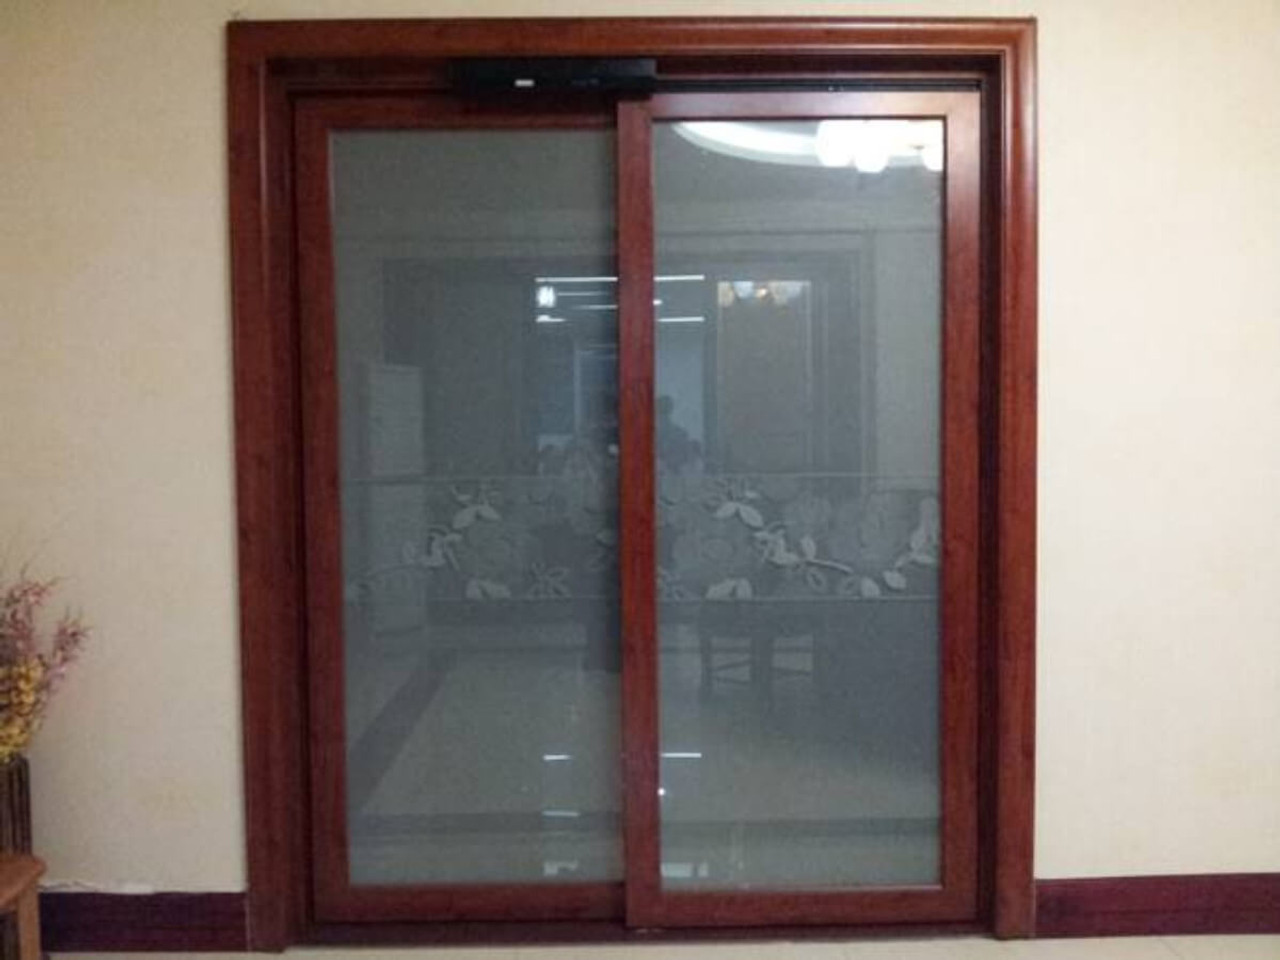 Autoslide automatic sliding door openers open the door all the way for people and part way for dogs and cats